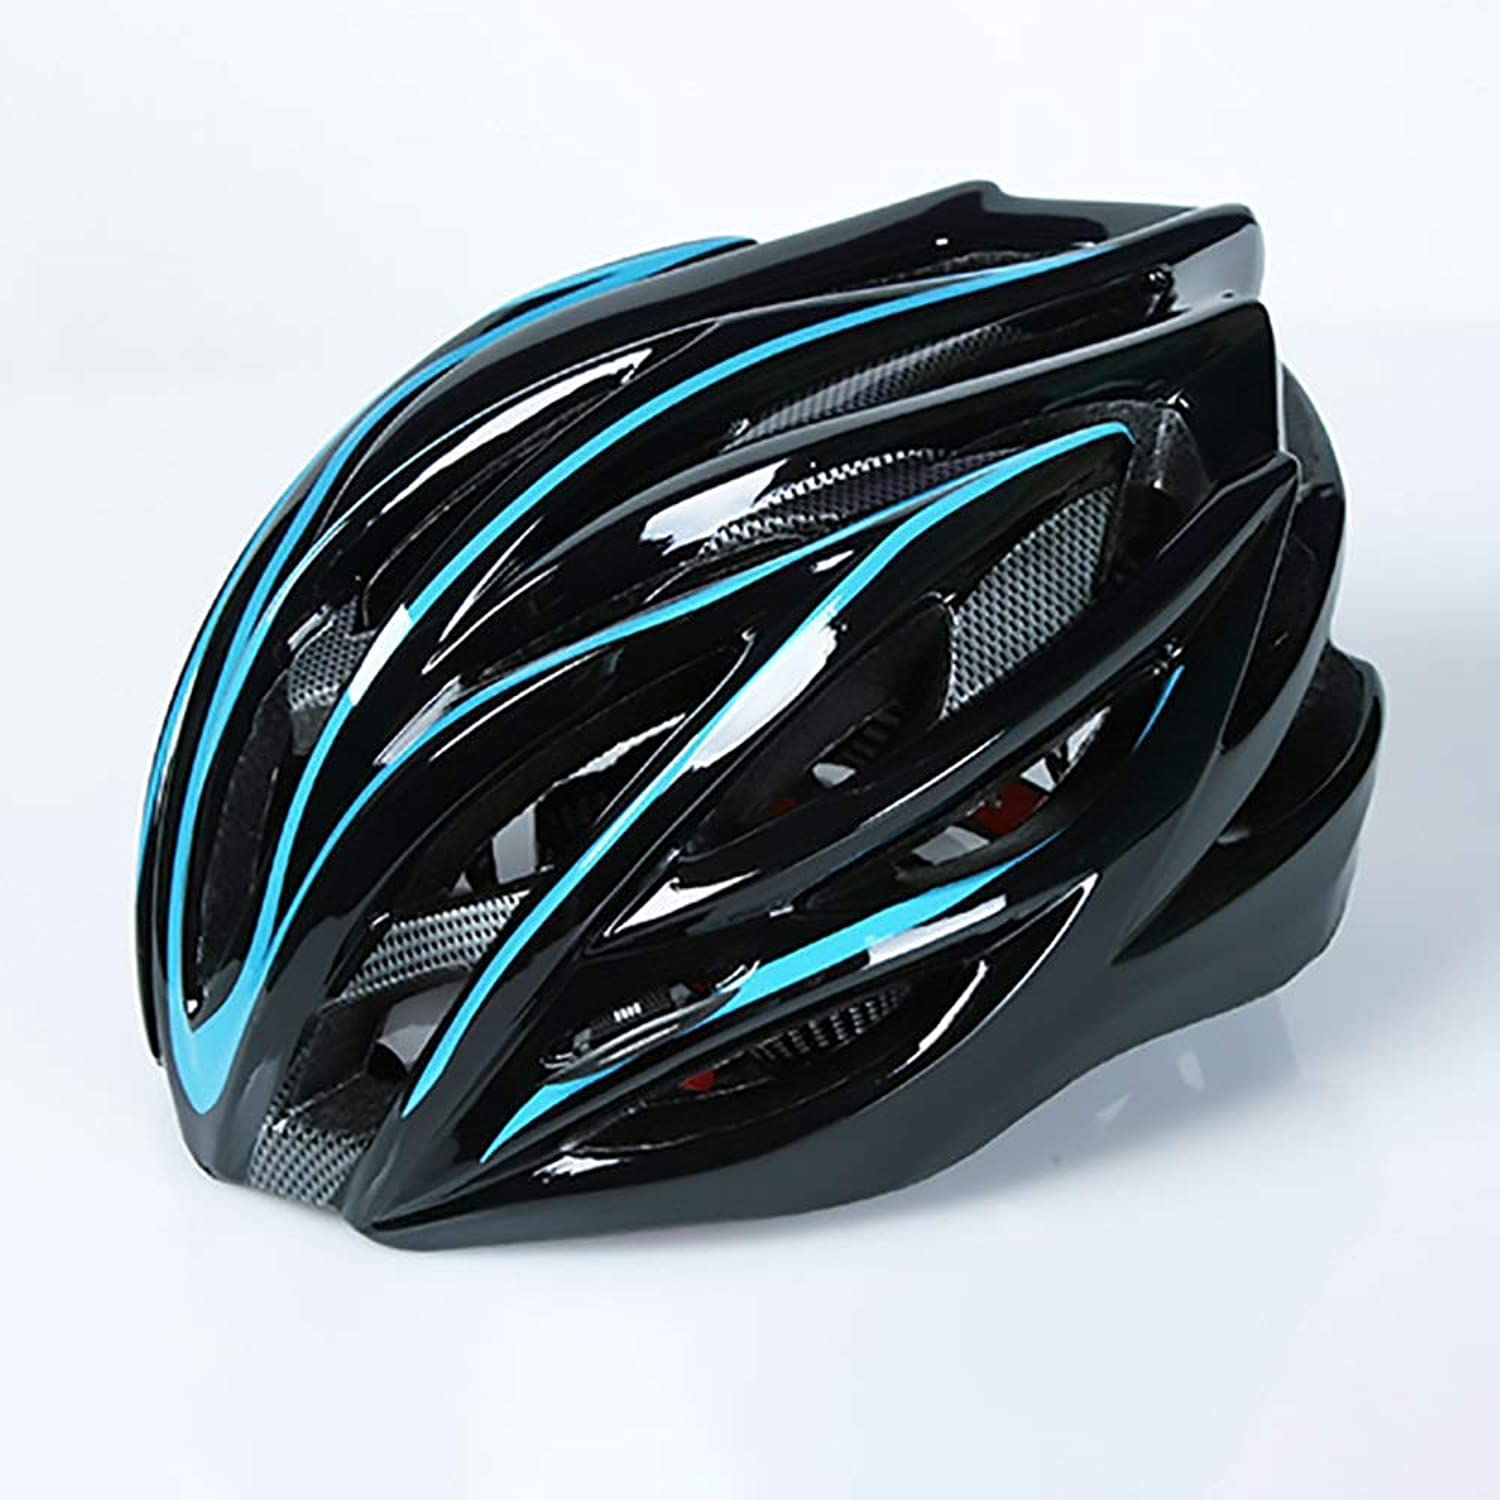 HYH Black and blueee Stripes Adult Bicycle Helmet Riding Electric Car Motorcycle Helmet Bicycle Mountain Bike Helmet Outdoor Riding Equipment Good Life